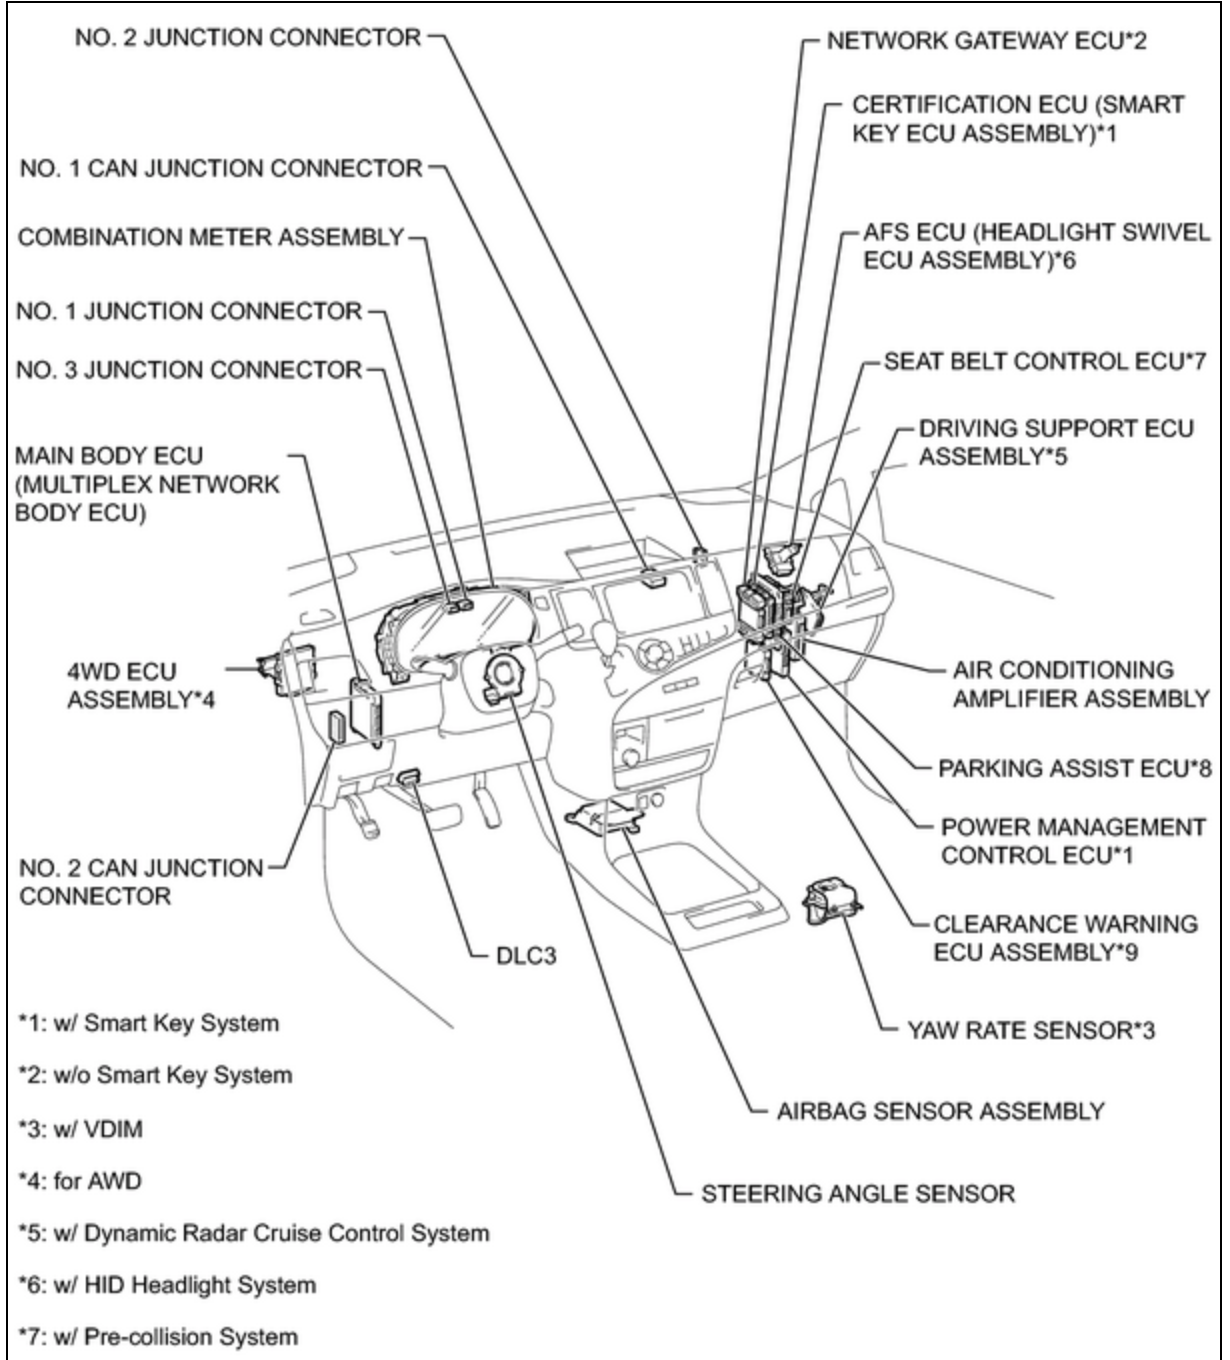 Toyota Sienna Service Manual: Zero Point Calibration of Yaw Rate Sensor Undone